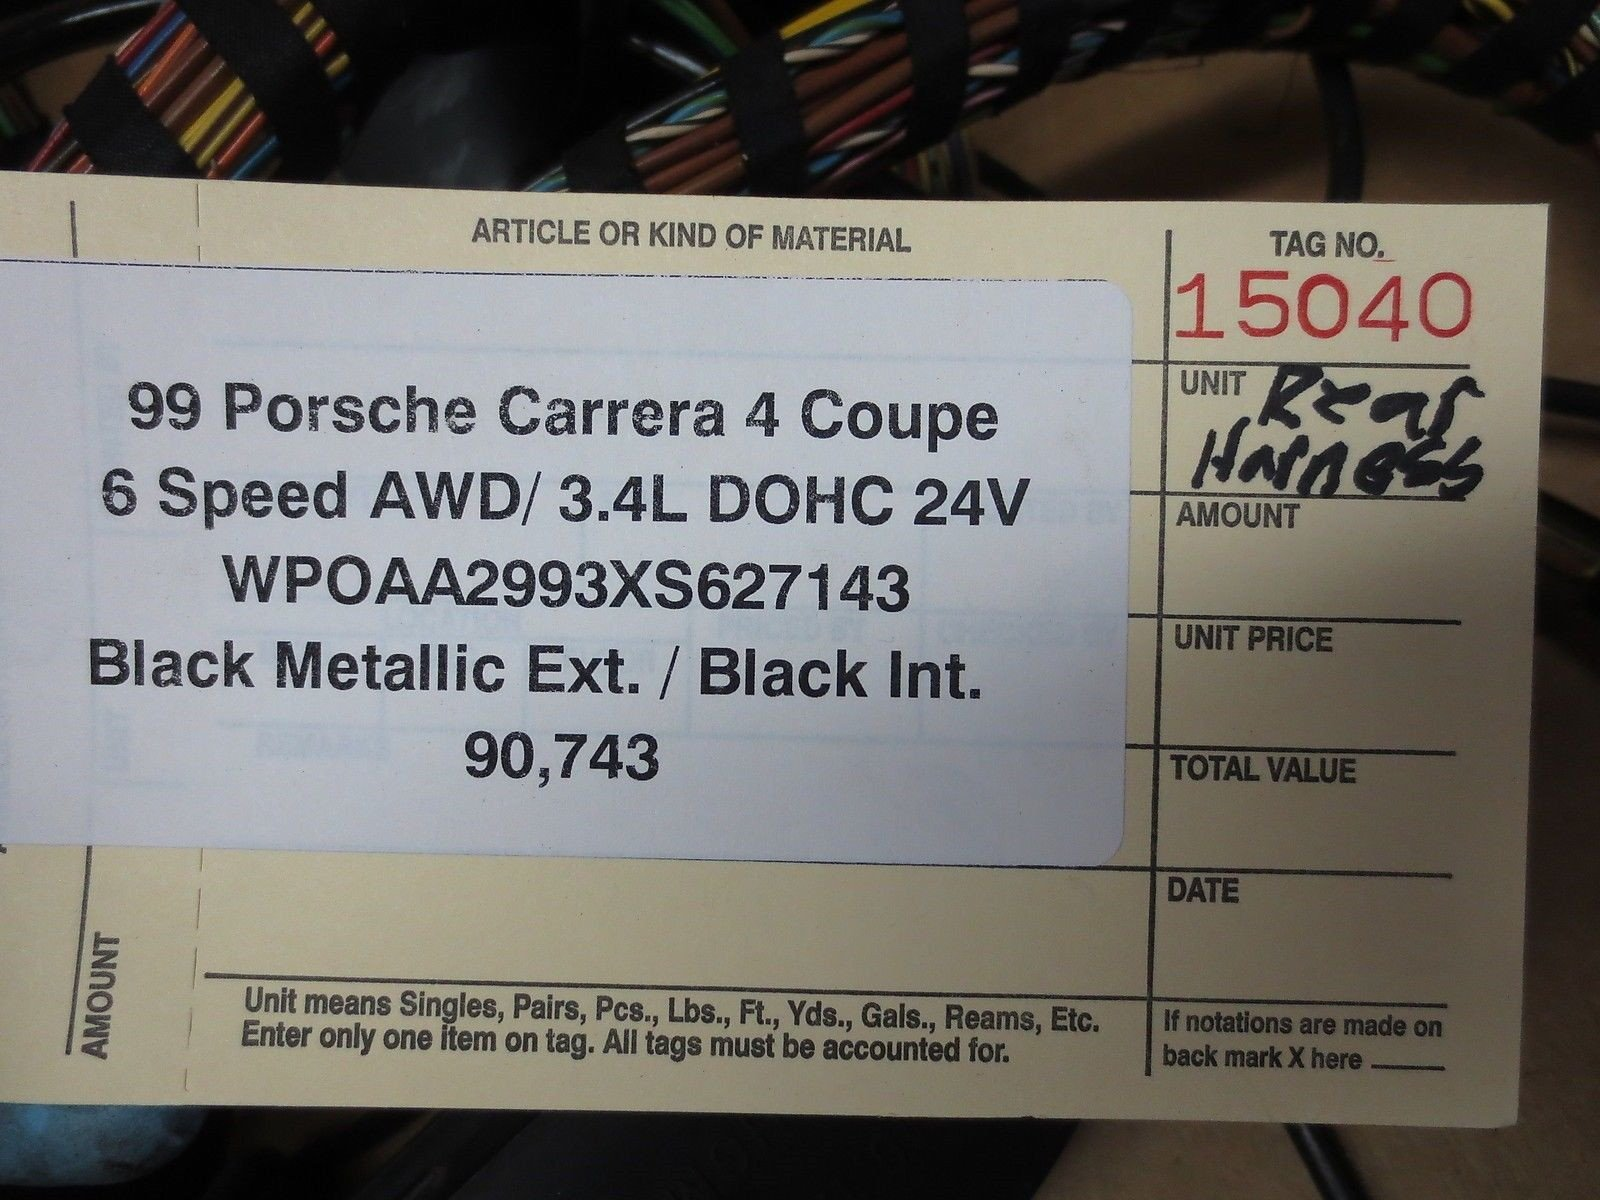 99 Porsche 911 Carrera 4 Coupe AWD 996 REAR WIRING HARNESS WIRE relays 90,743